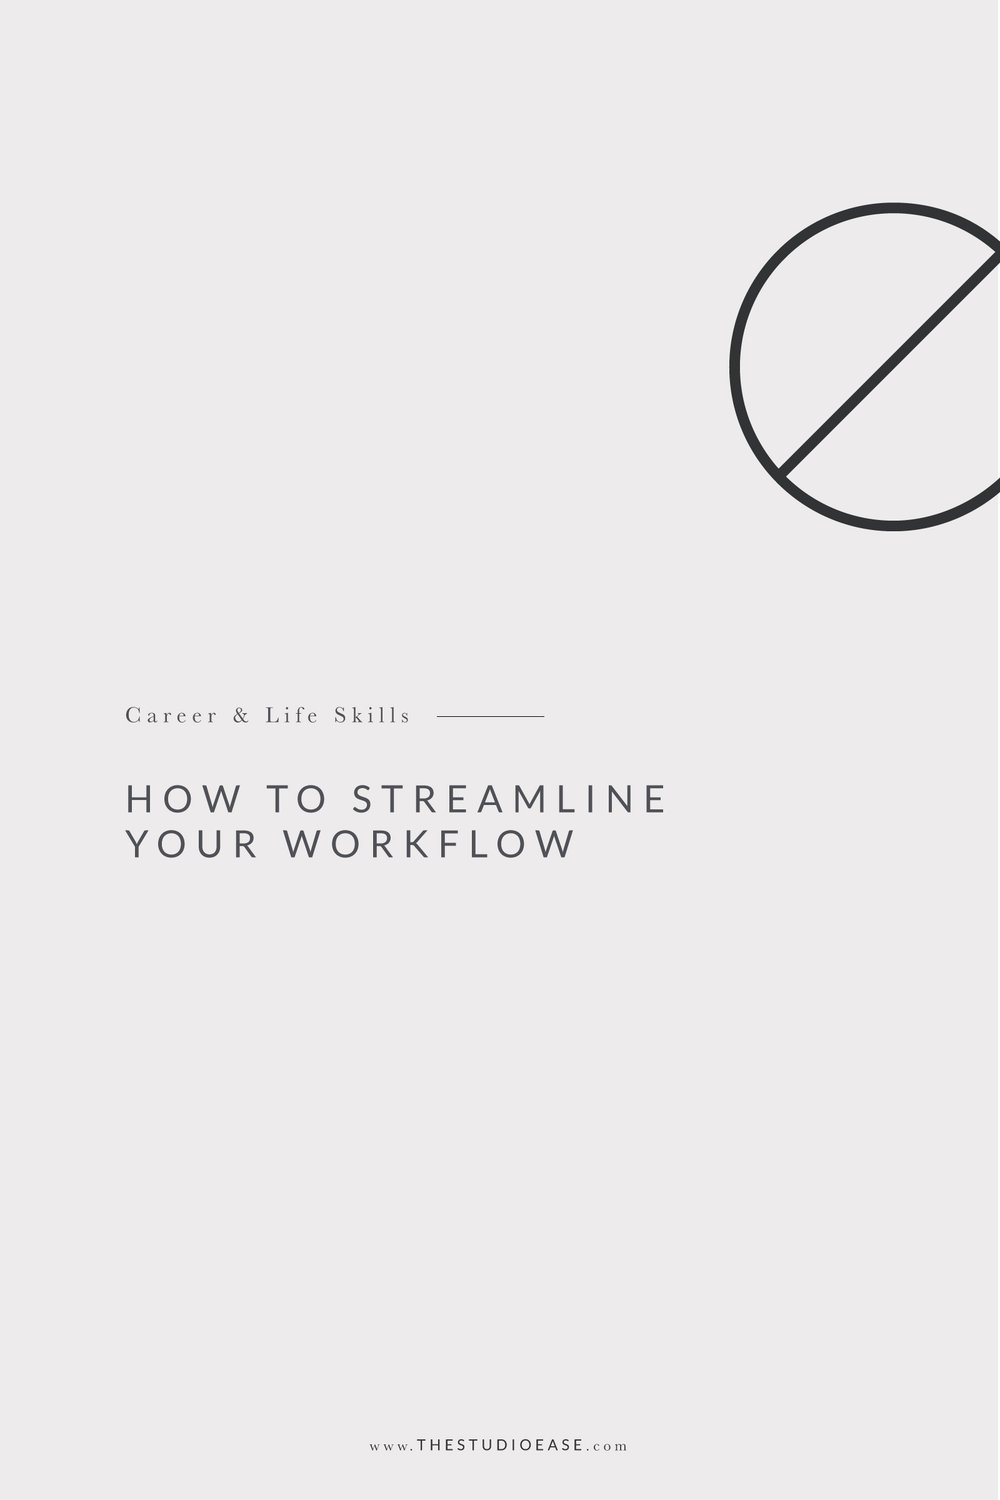 How to Streamline Your Workflow by Studio Ease #workflow #career work processes, automation, project management tools, outsourcing tasks, workflow efficiency, effective workflow system